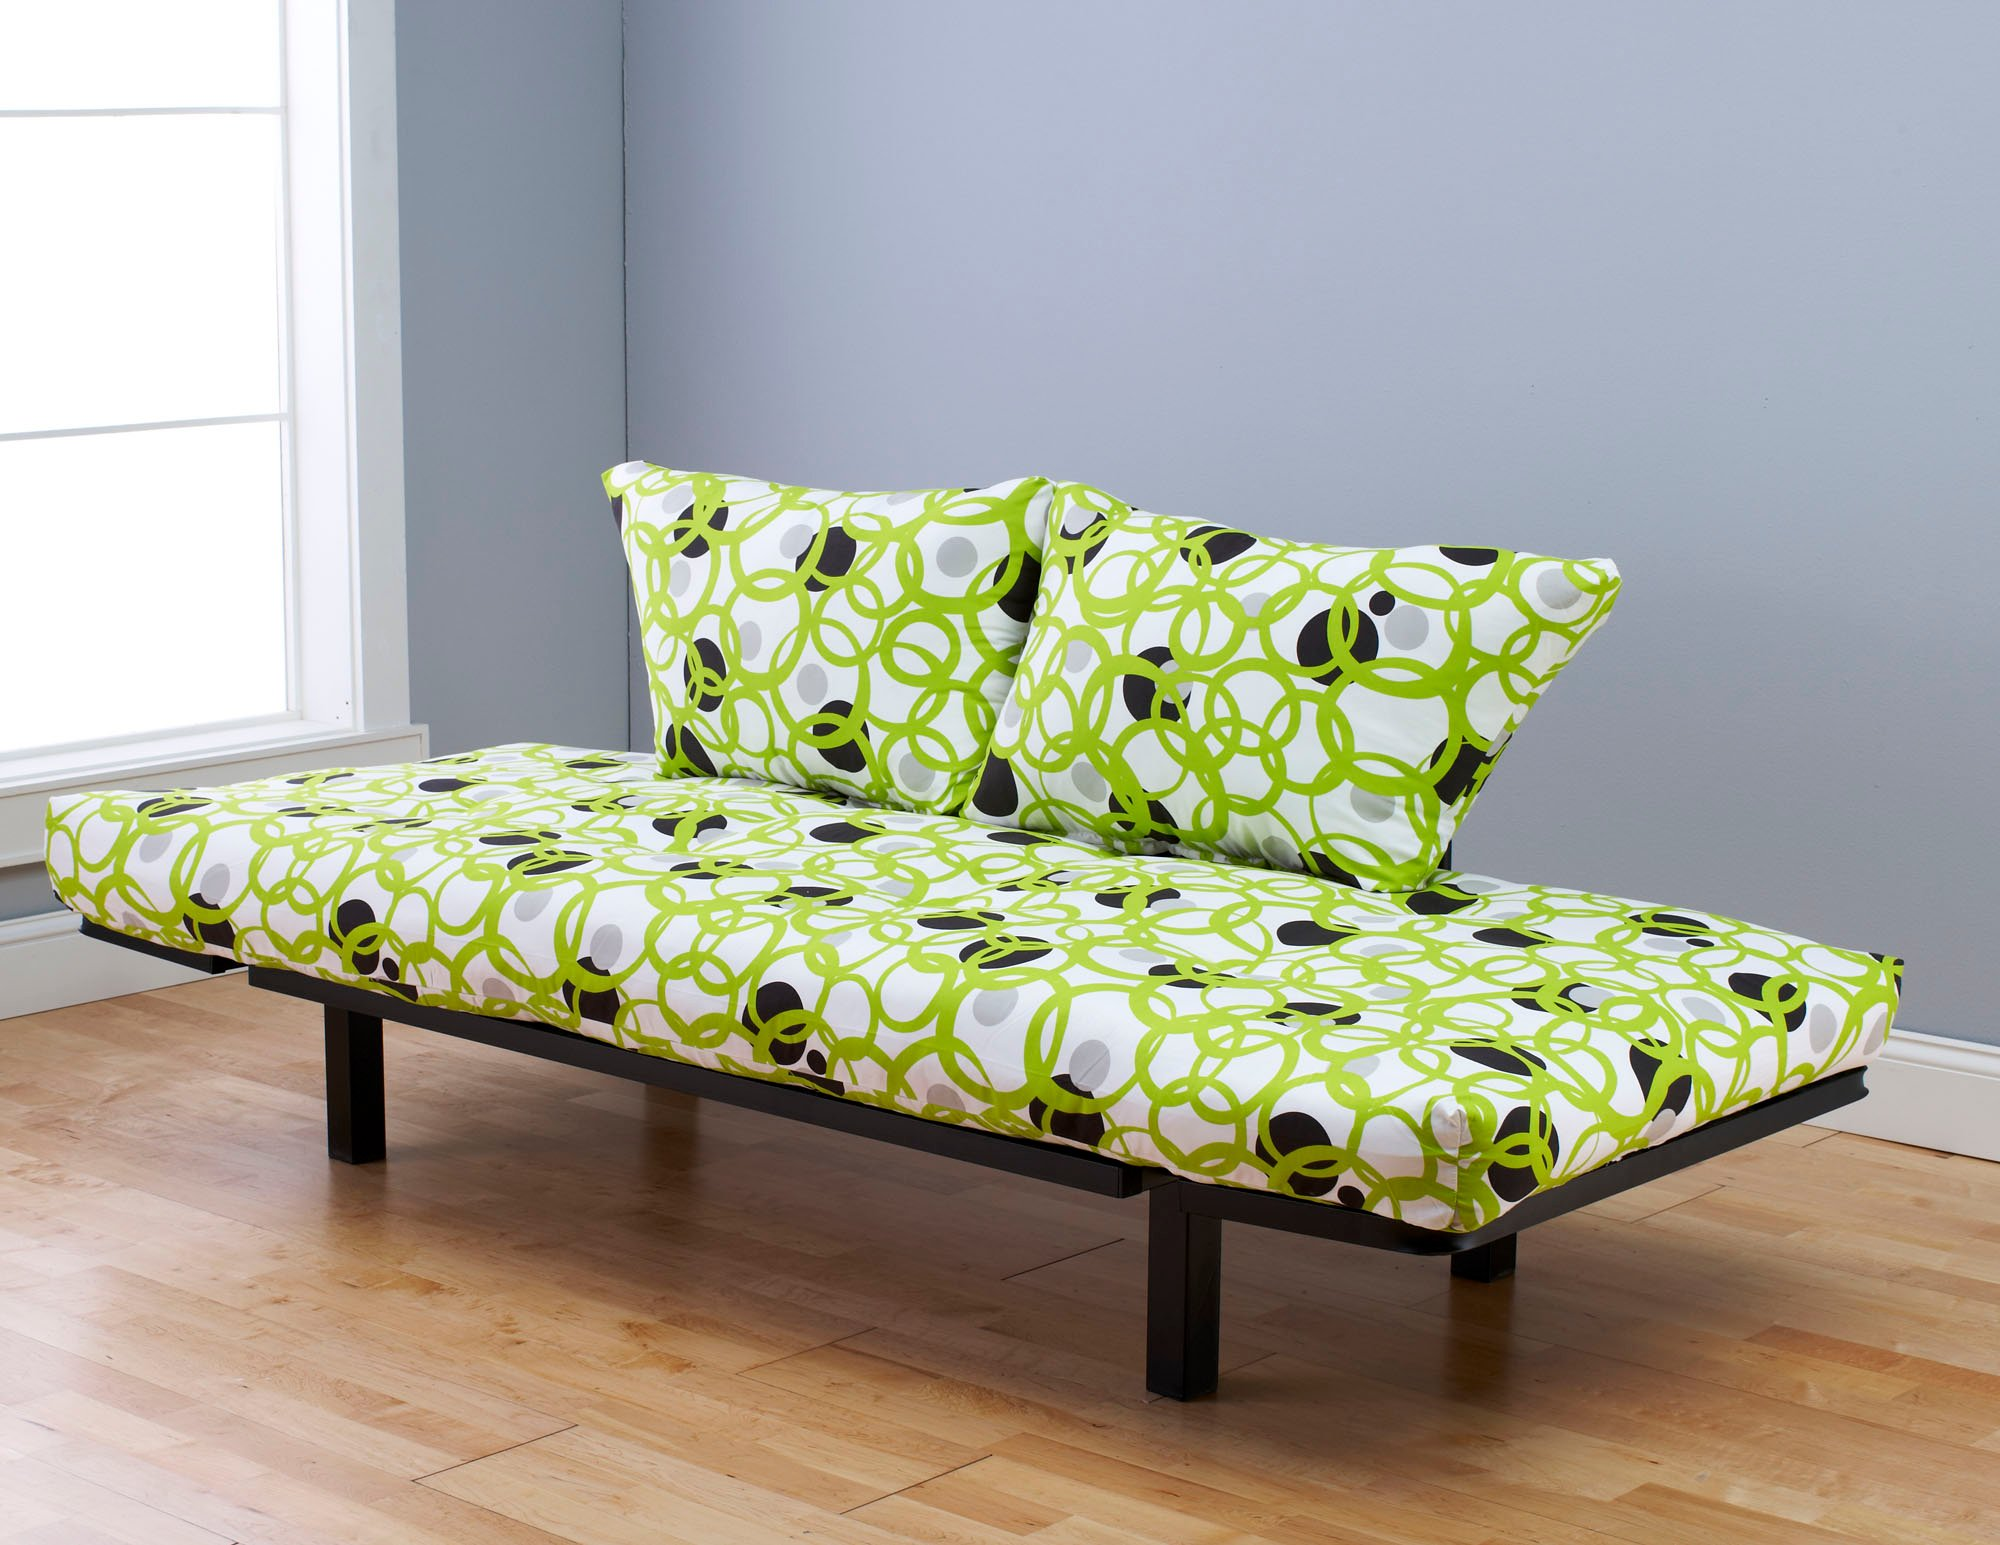 Spacely Futon Daybed Lounger With Mattress Full Circle By